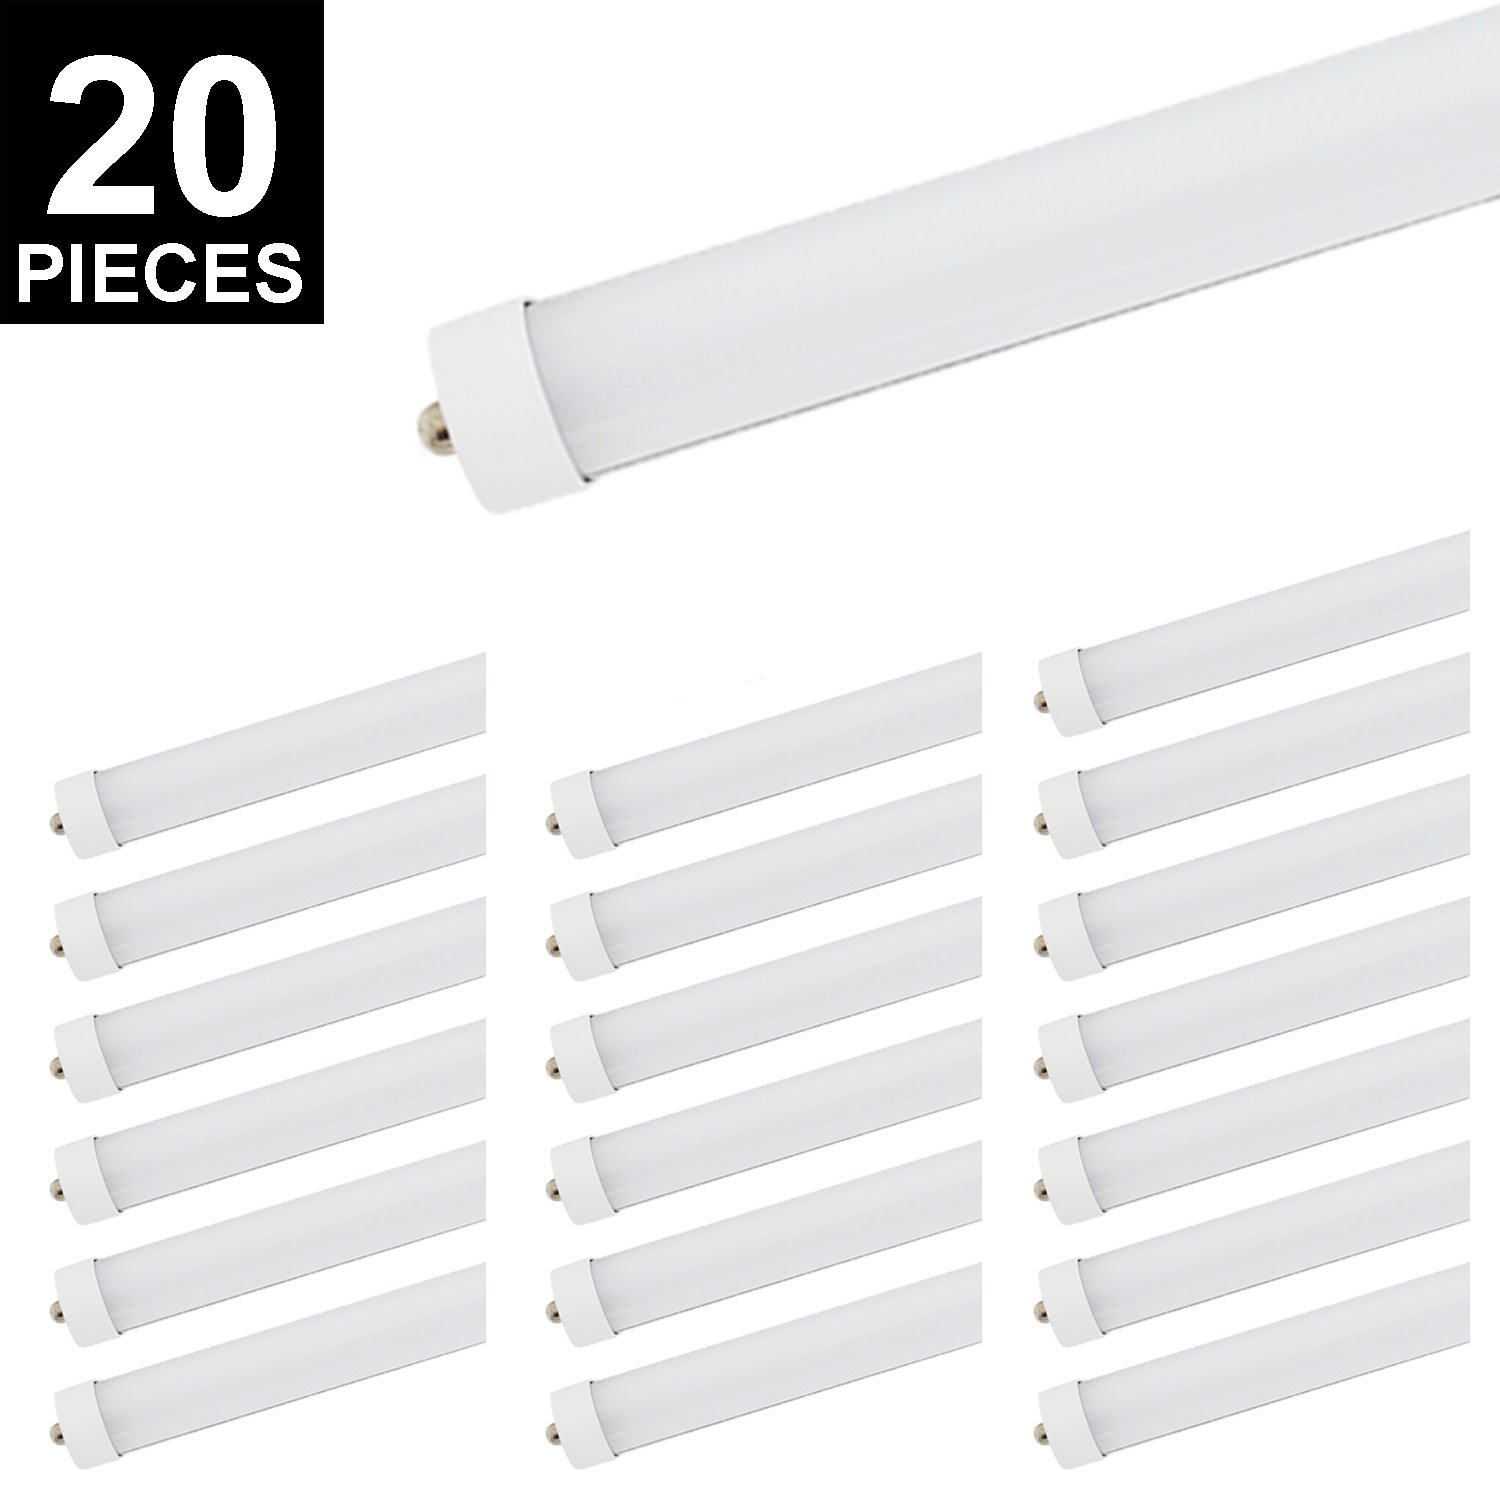 20Pack 8ft T8 LED Tube, CNSUNWAY LIGHTING 45W 96'' FA8 Single Pin Light Bulb 6000K Cool White 4800LM Lamps (20, Frosted Cover)